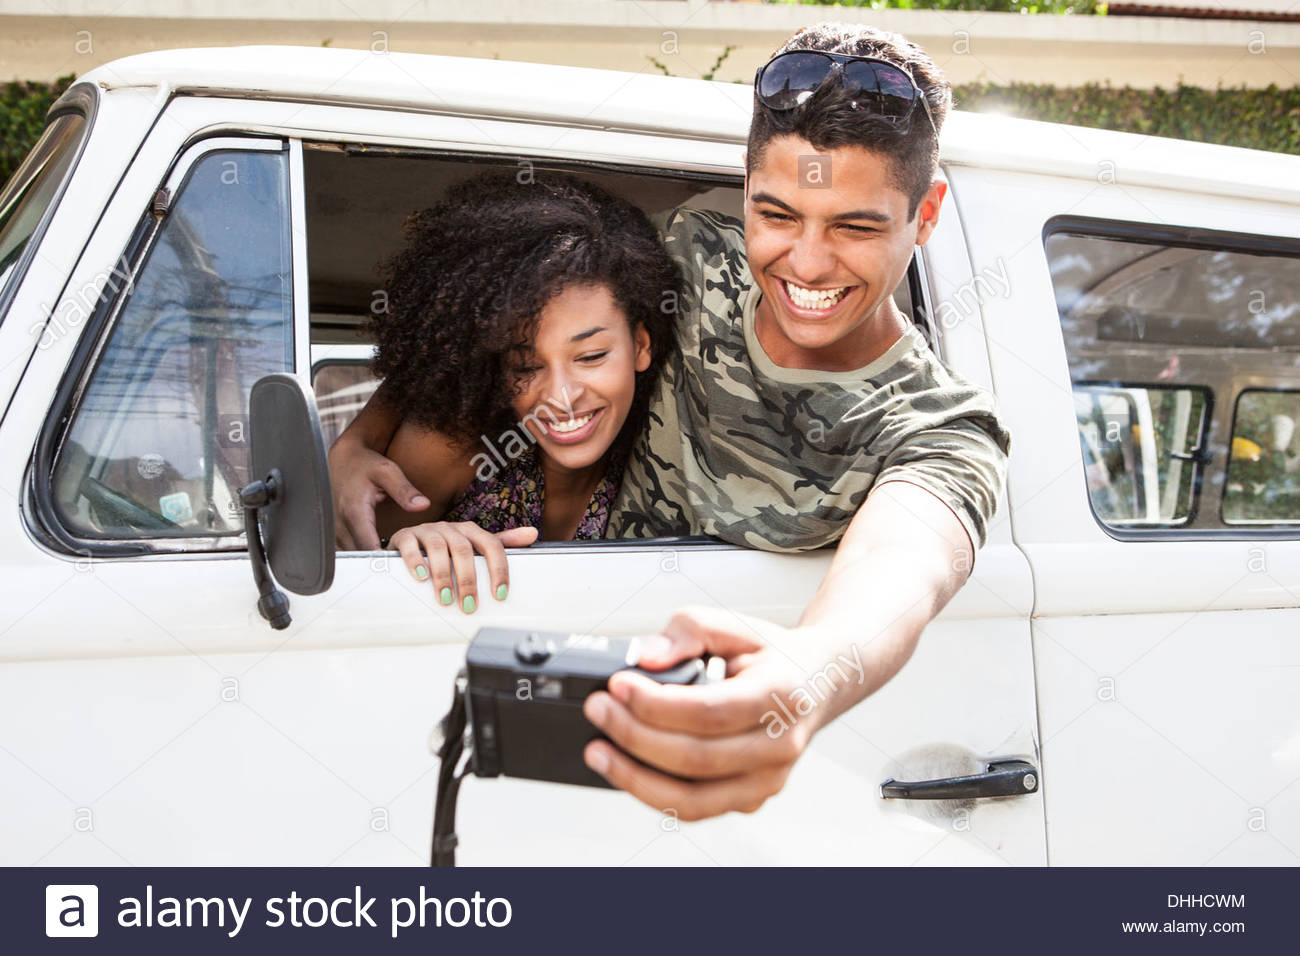 Couple taking photograph from inside van - Stock Image